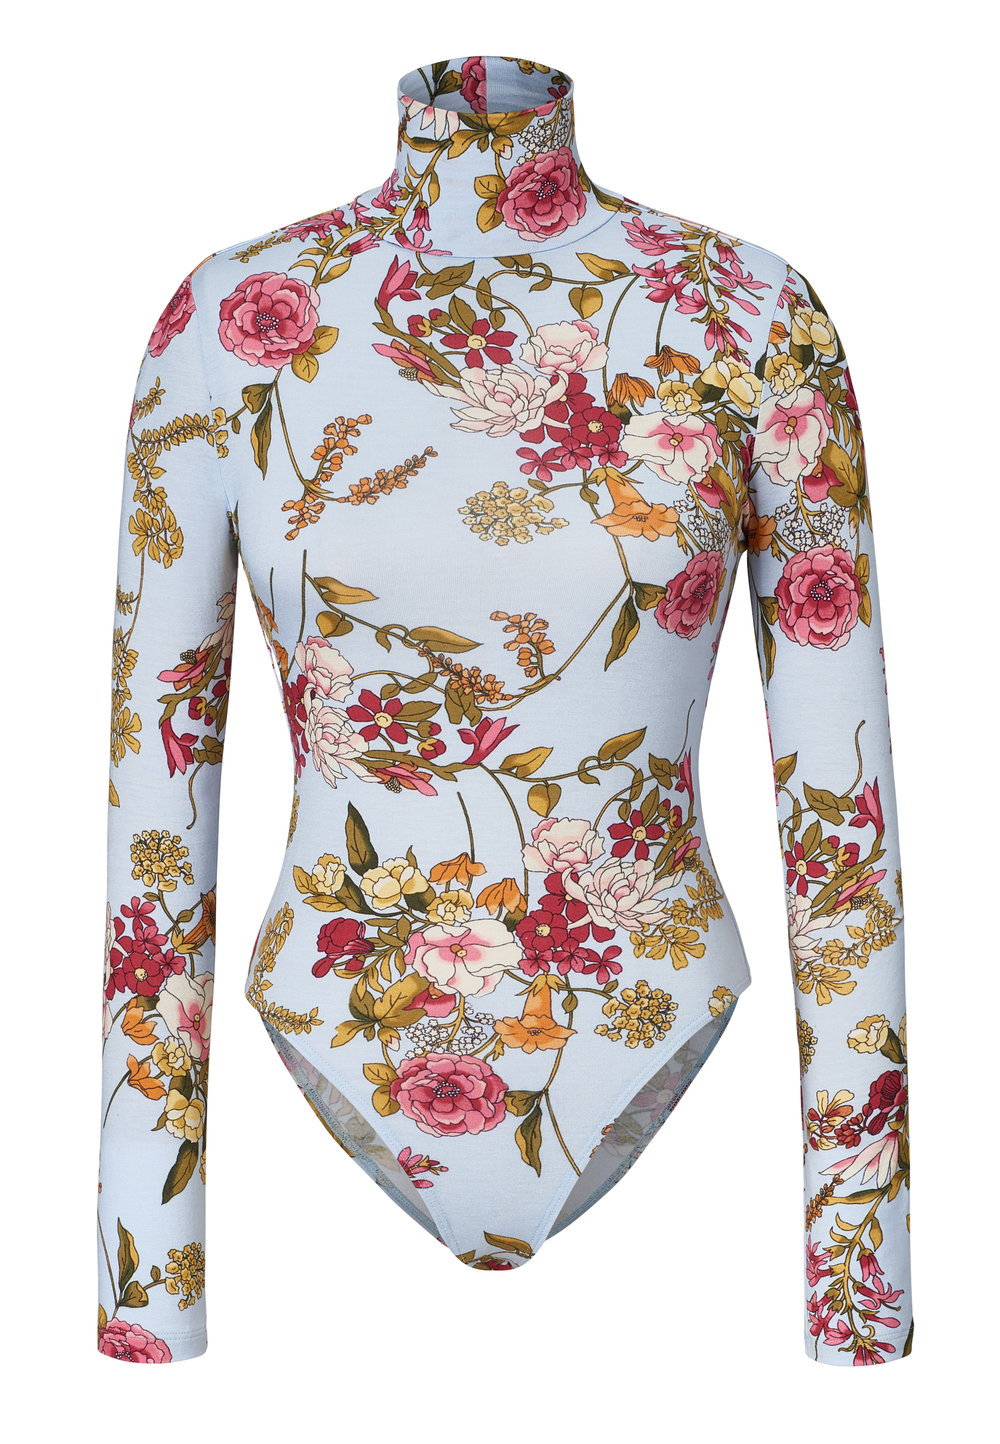 The Fragrant Flower Bodysuit $180